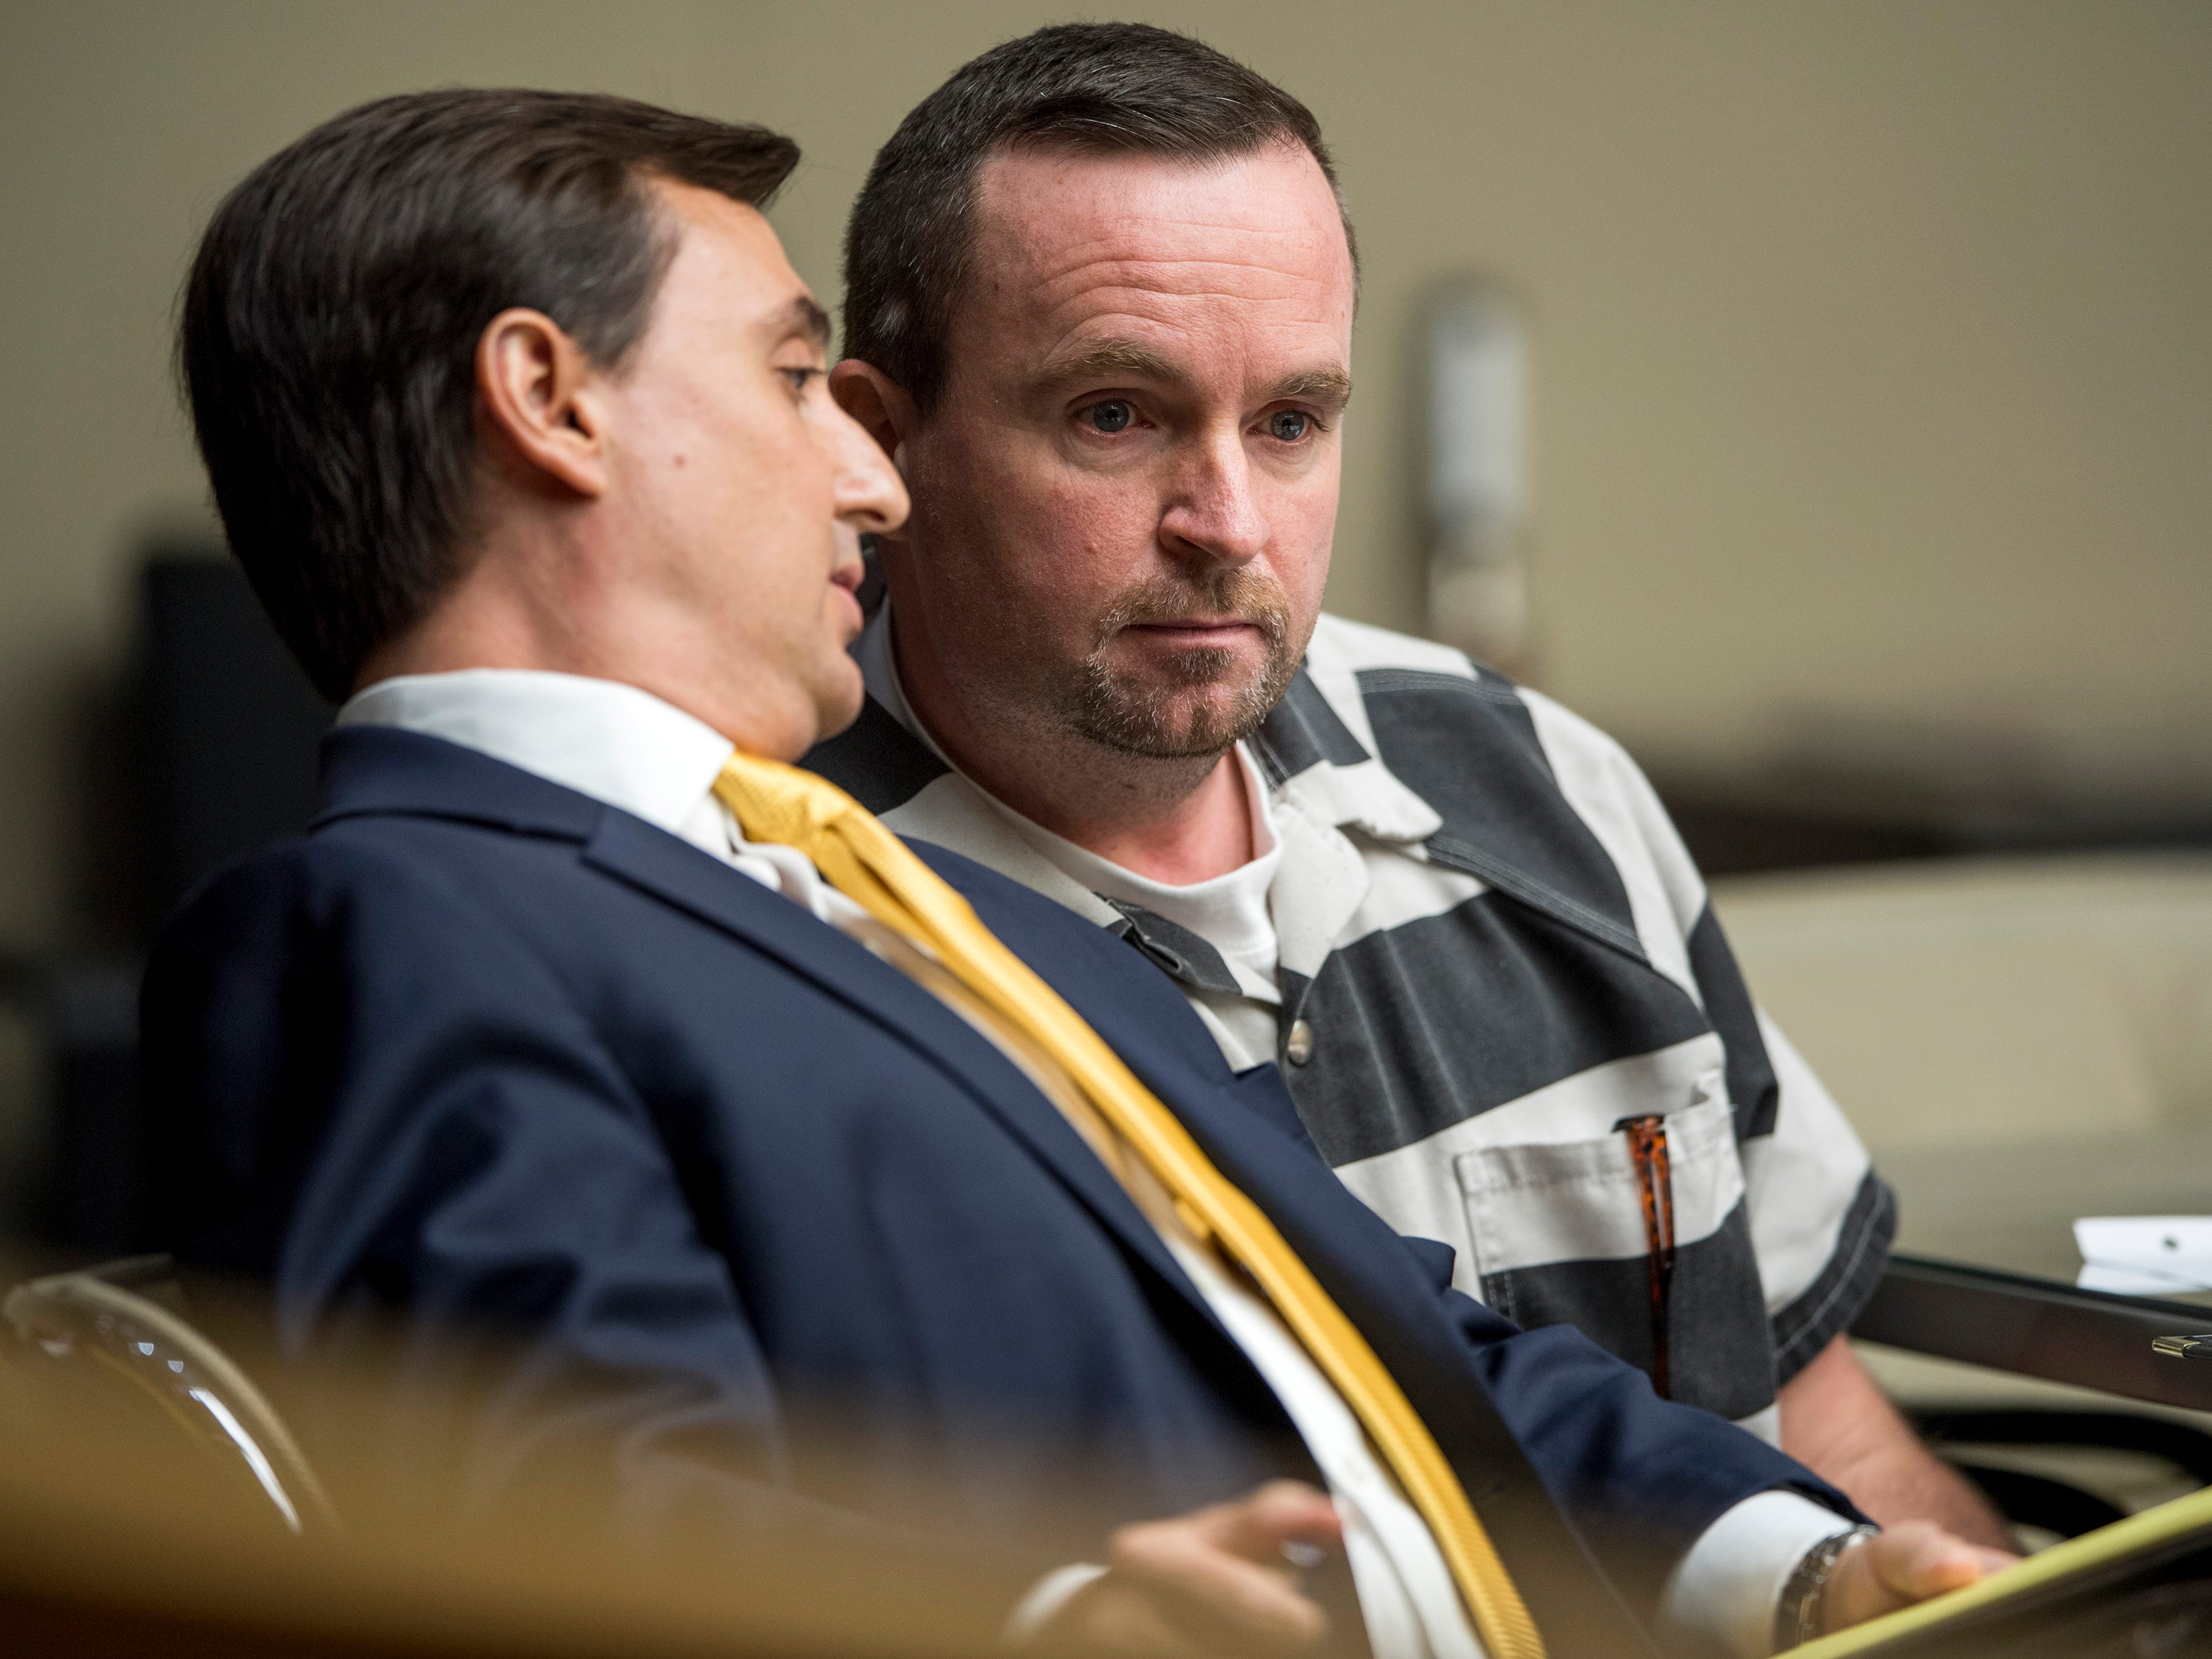 Attorney Stephen Ross Johnson, left, leans over to talk to David Lynn Richards during Richards' sentencing hearing in Knox County Criminal Court on Thursday, May 9, 2019.